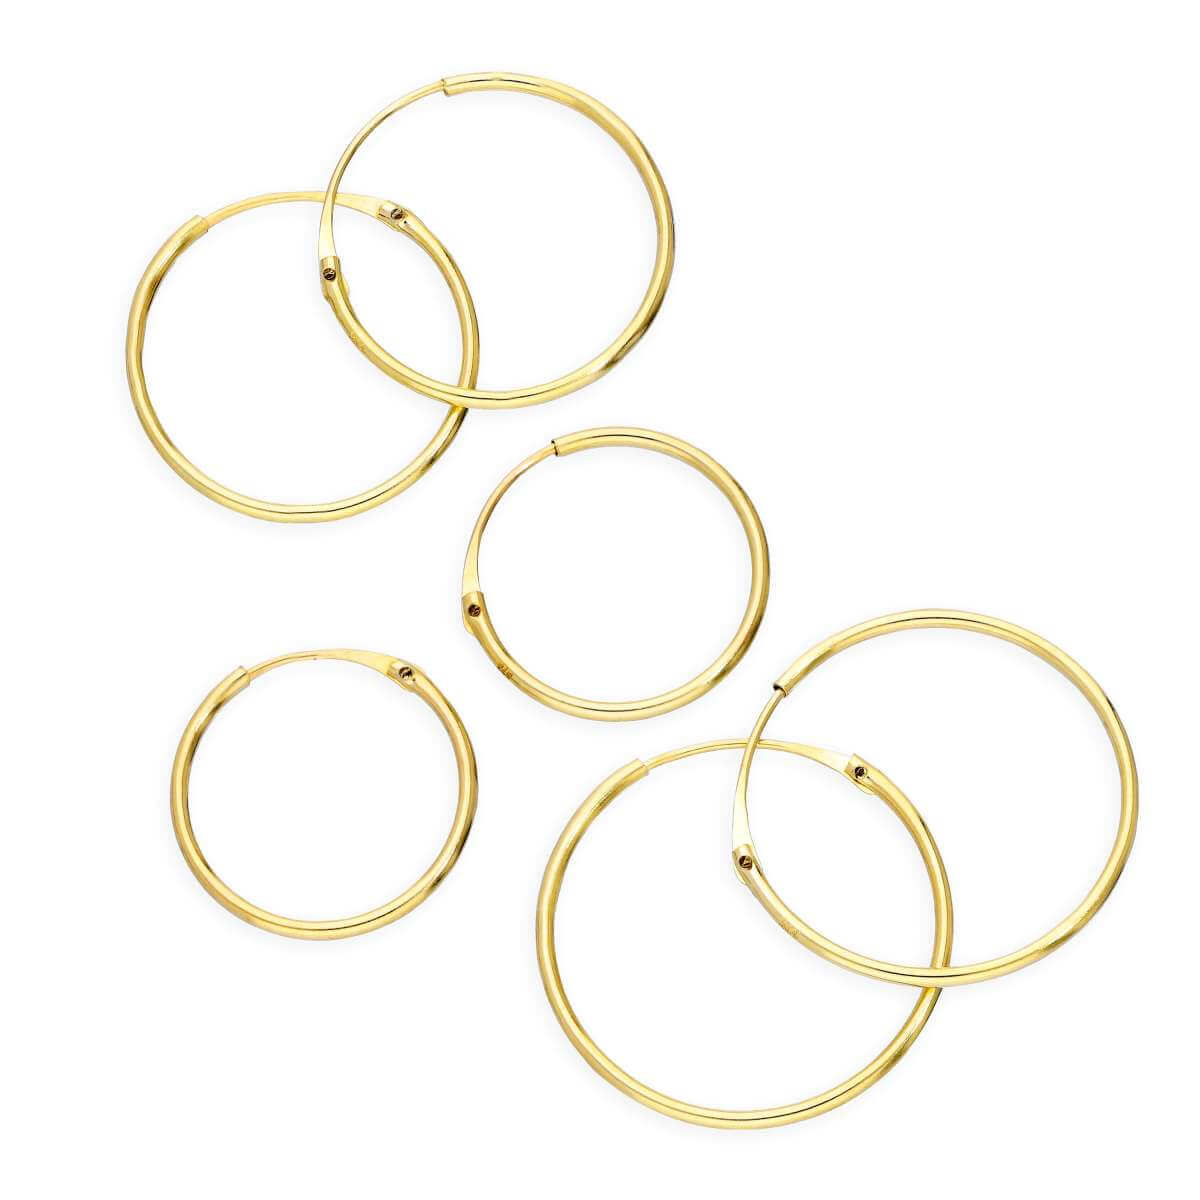 Triple 9ct Gold 0.8mm 12 14 & 16mm Tube Hoop Earrings Set